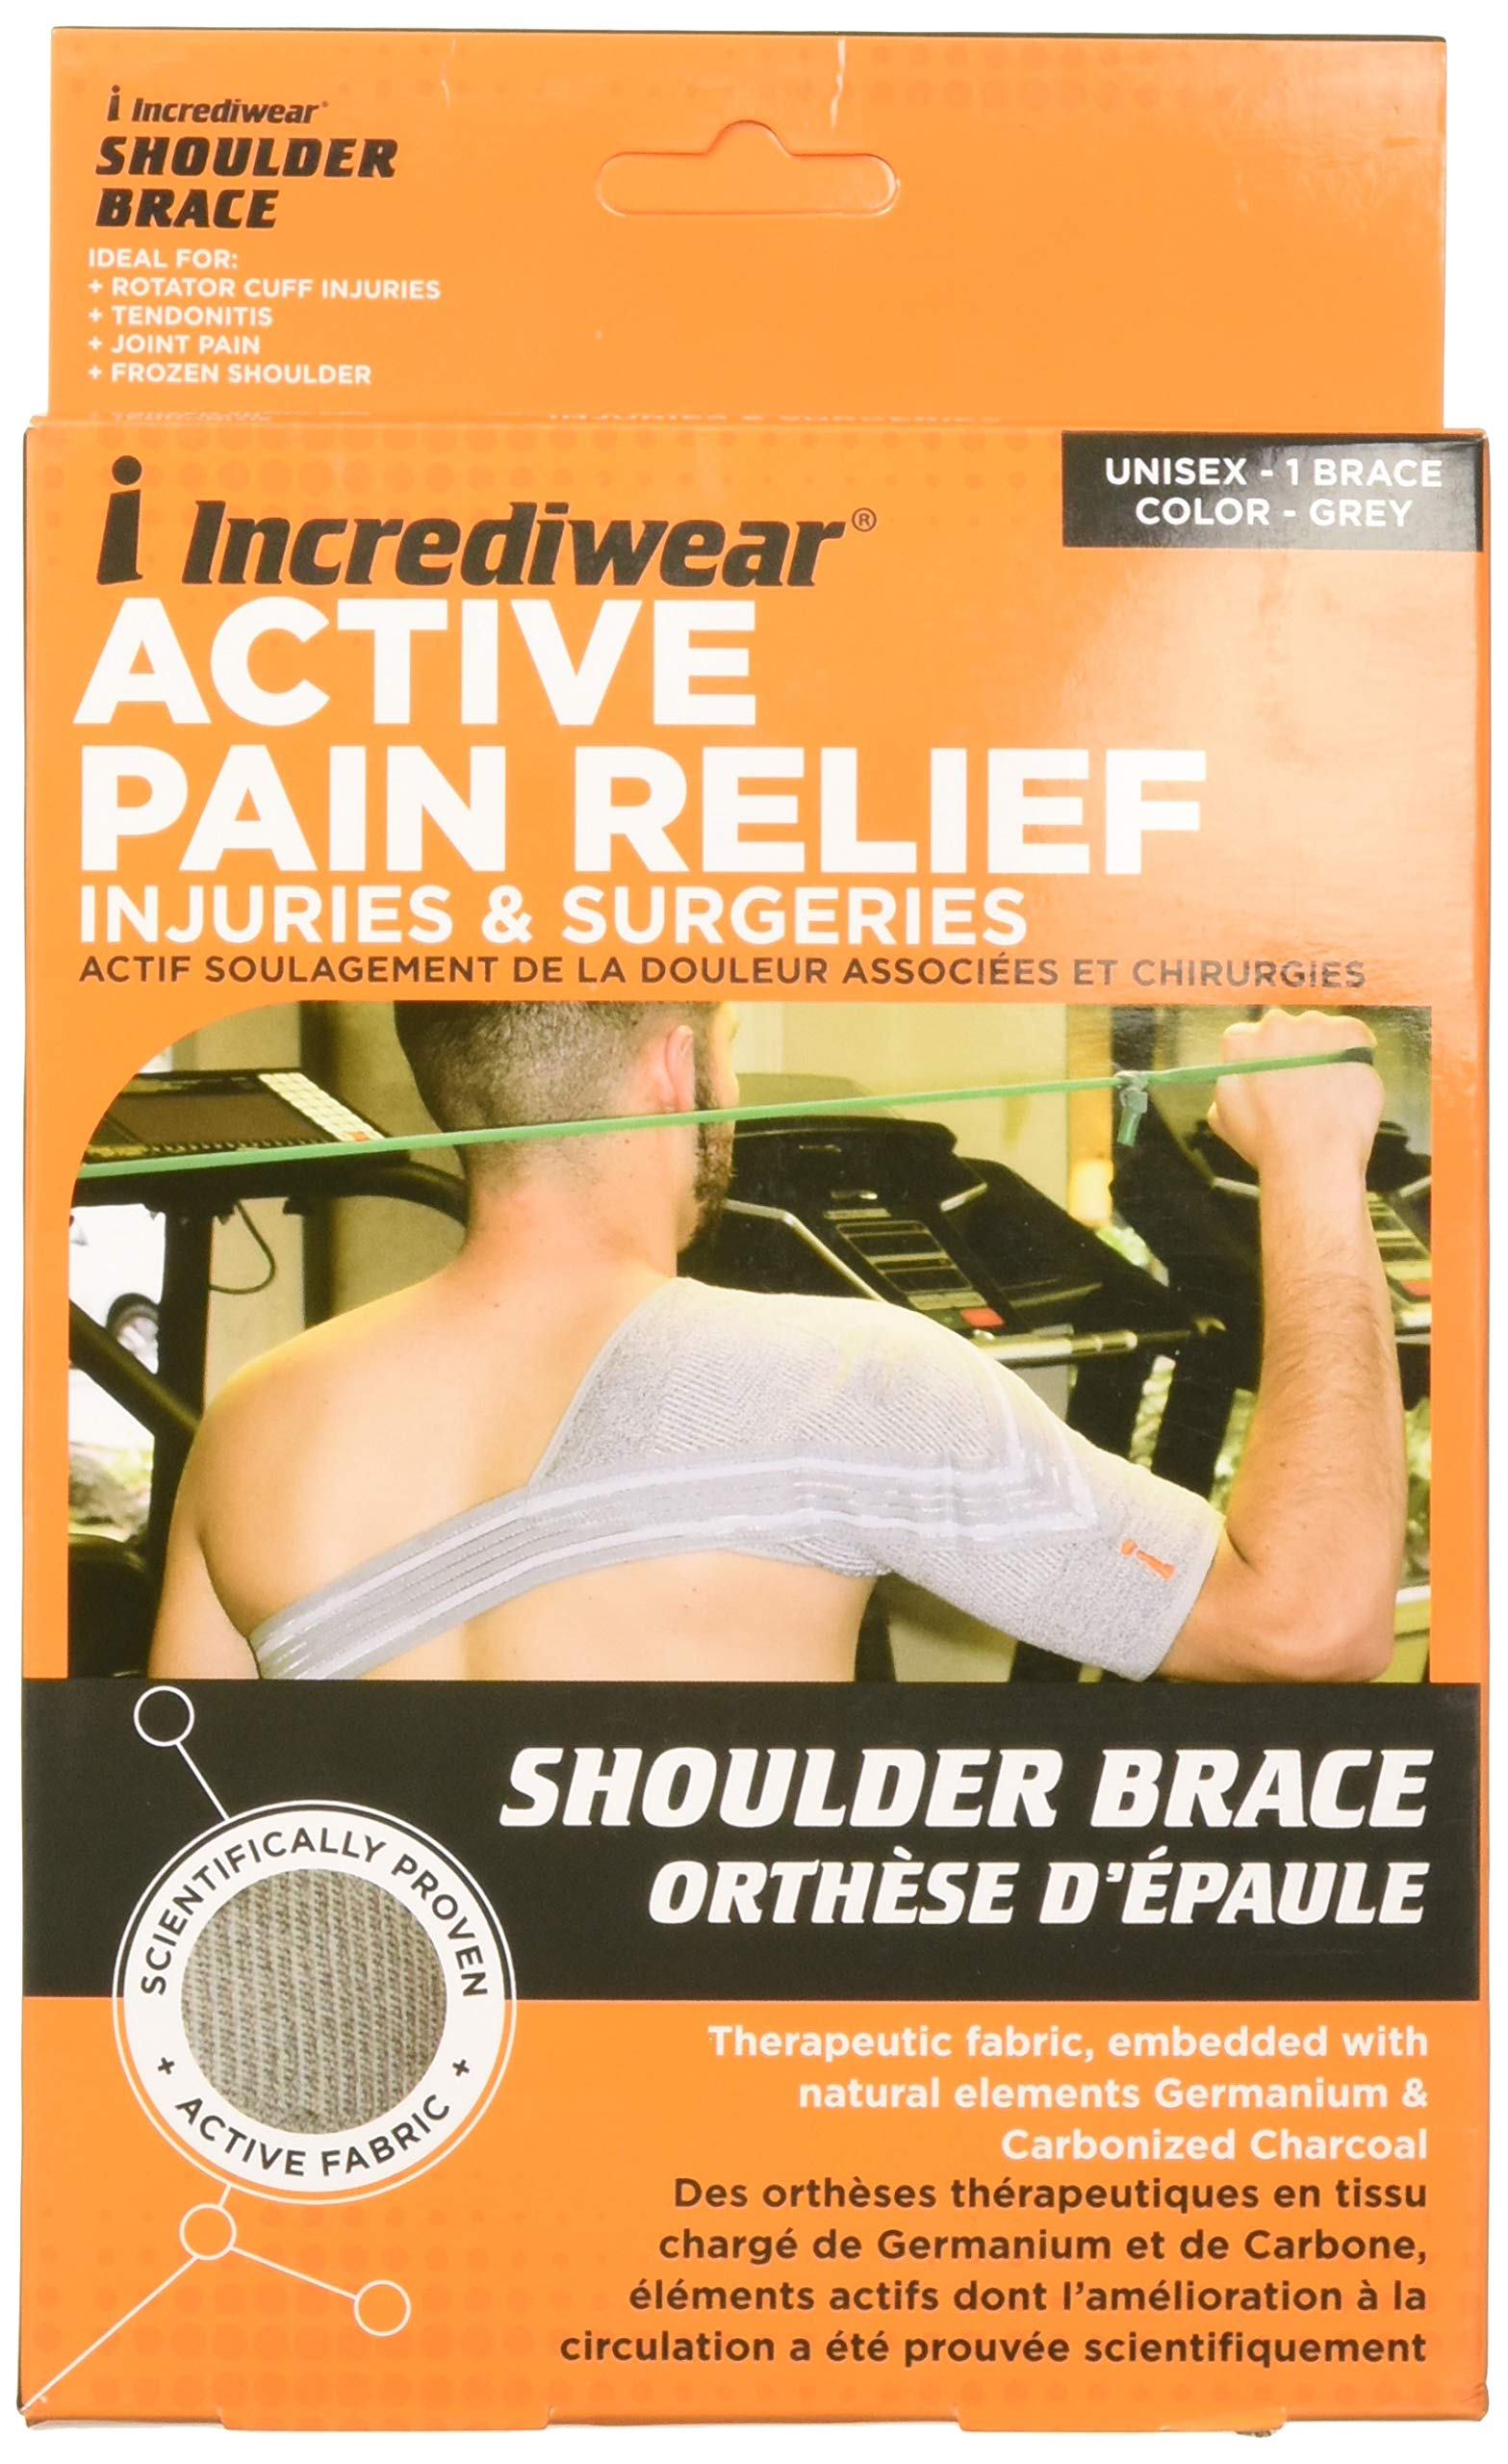 INCREDIWEAR Shoulder Brace, Grey, Medium, 0.03 Pound by Incrediwear